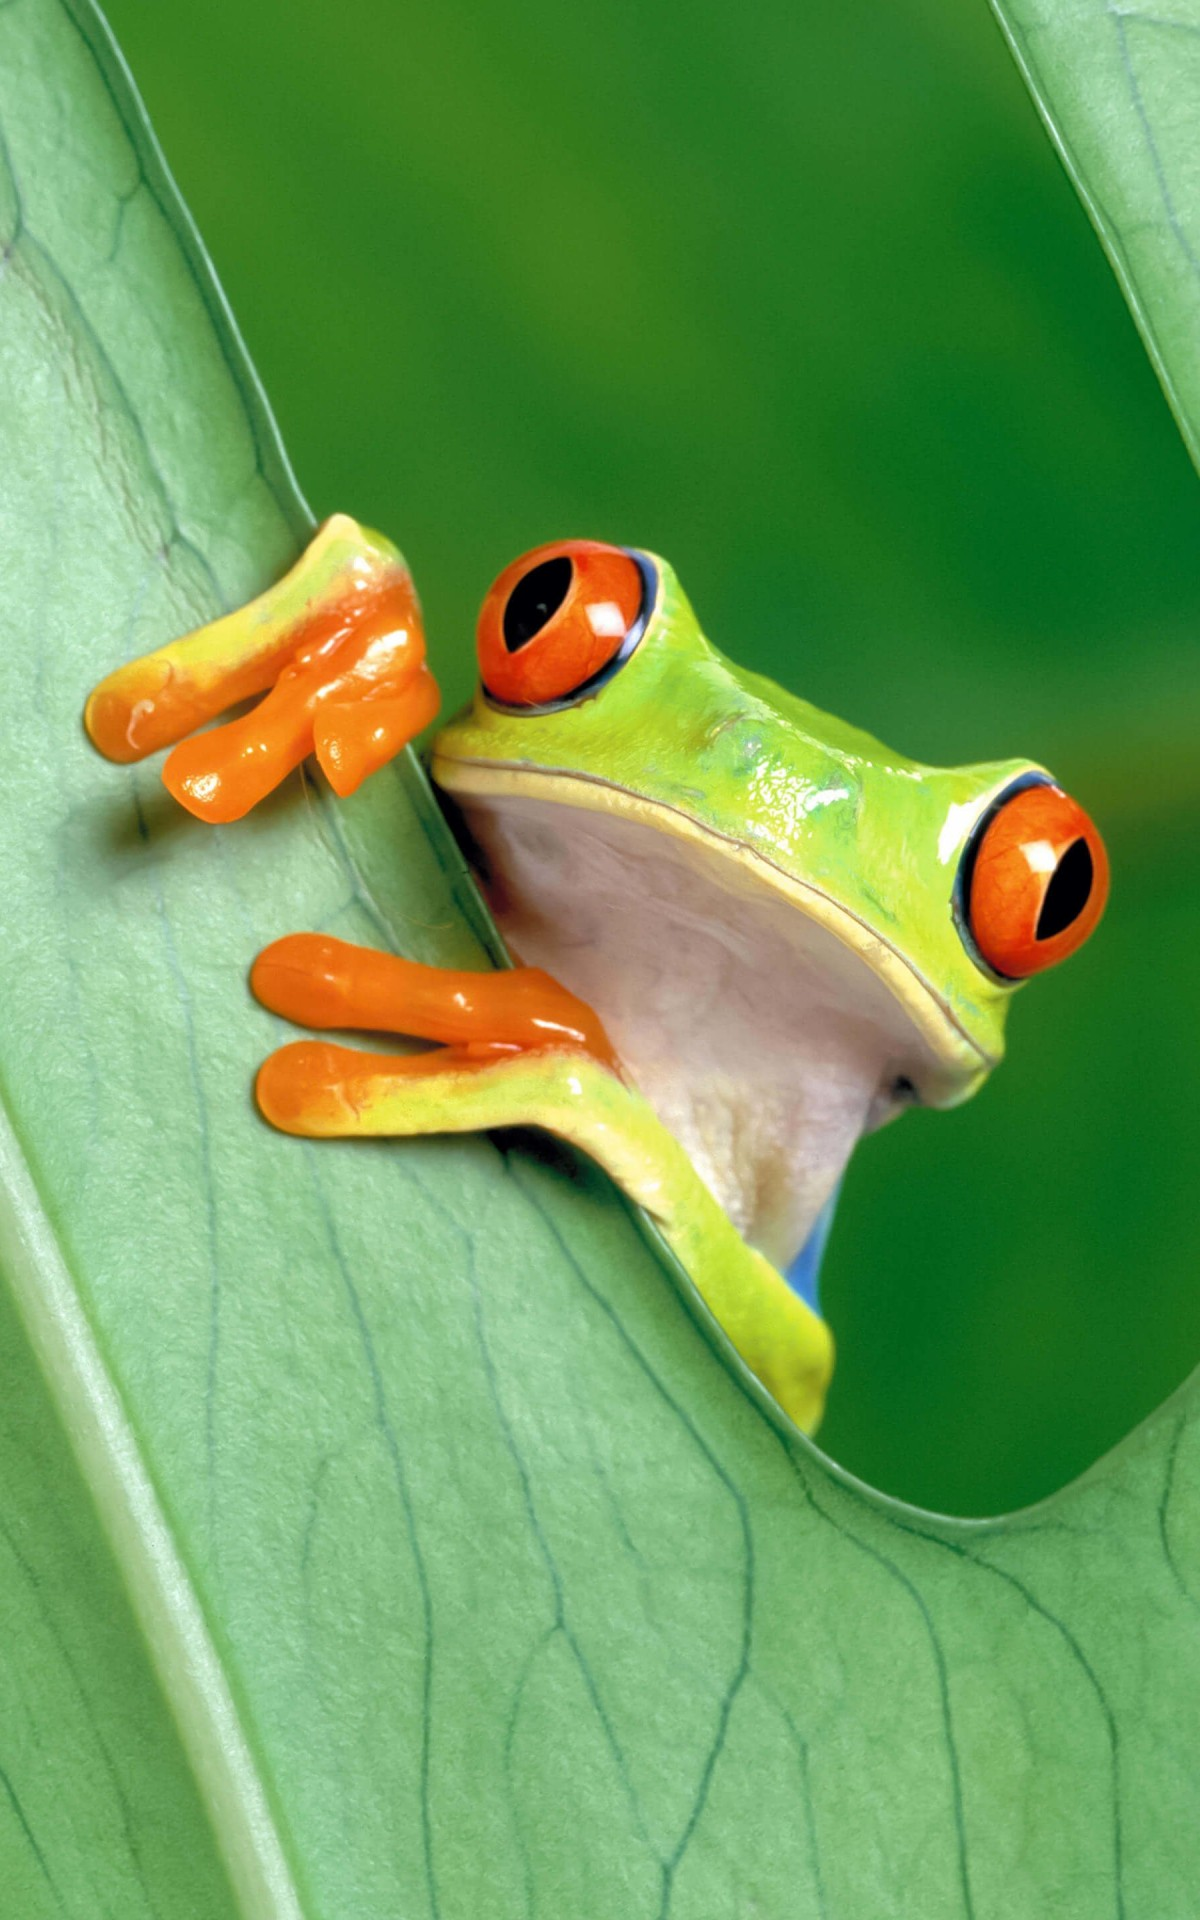 Red Eyed Tree Frog Wallpaper for Amazon Kindle Fire HDX